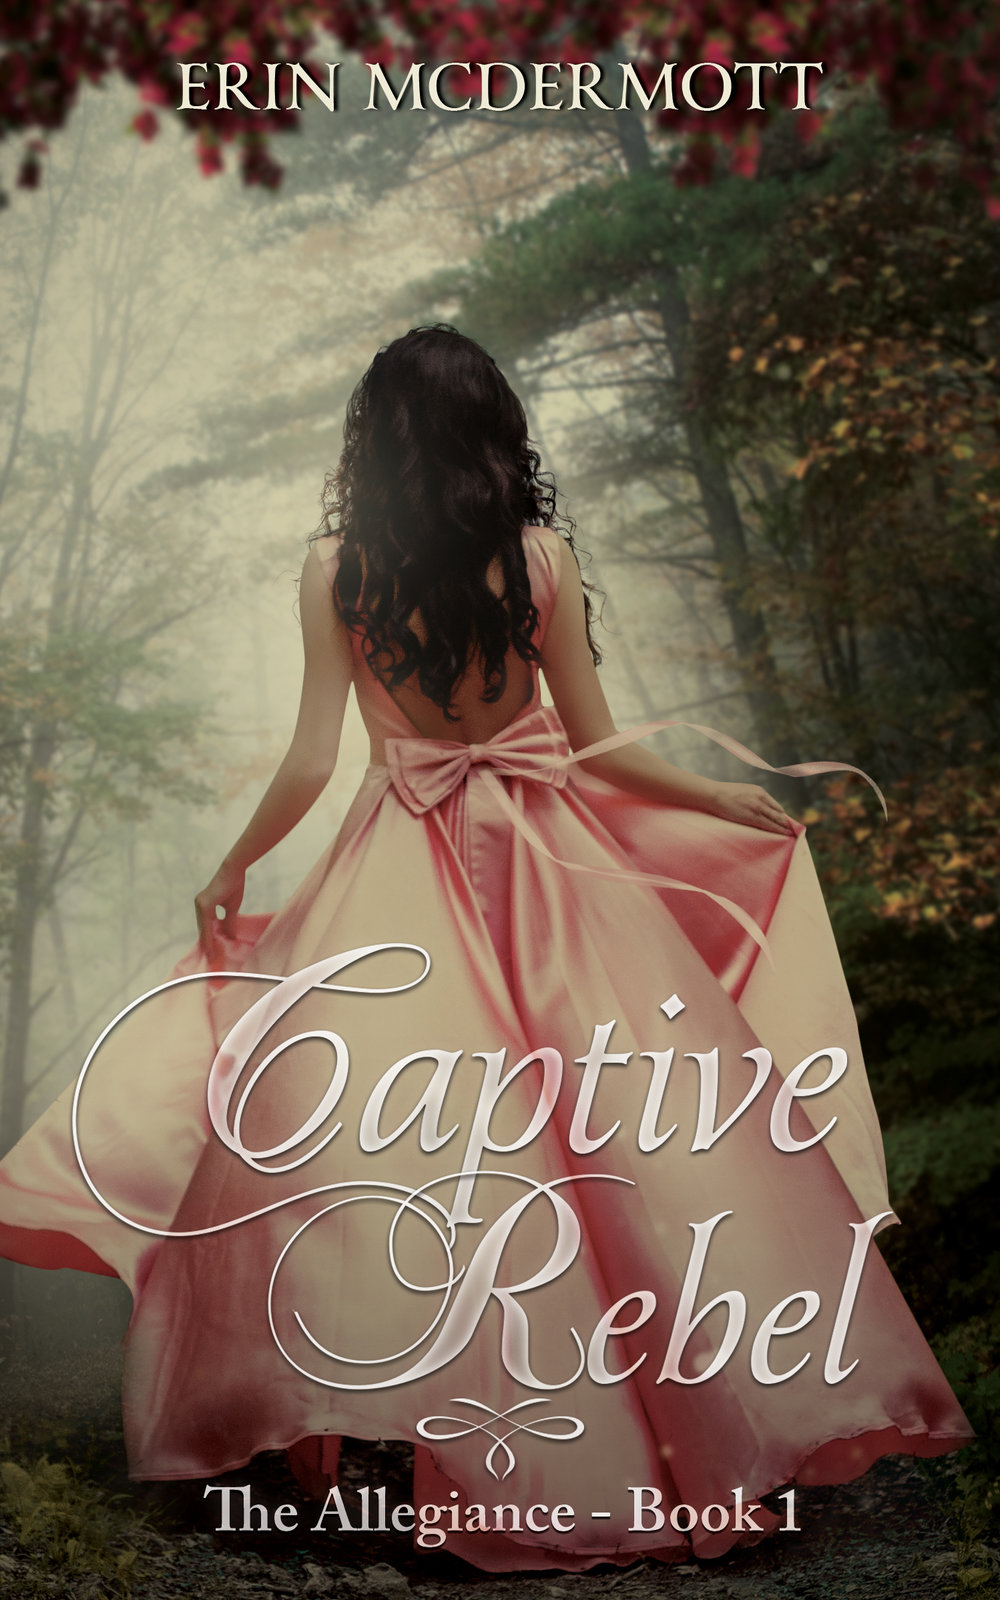 Captive Rebel_Book cover_Kindle_02.jpg